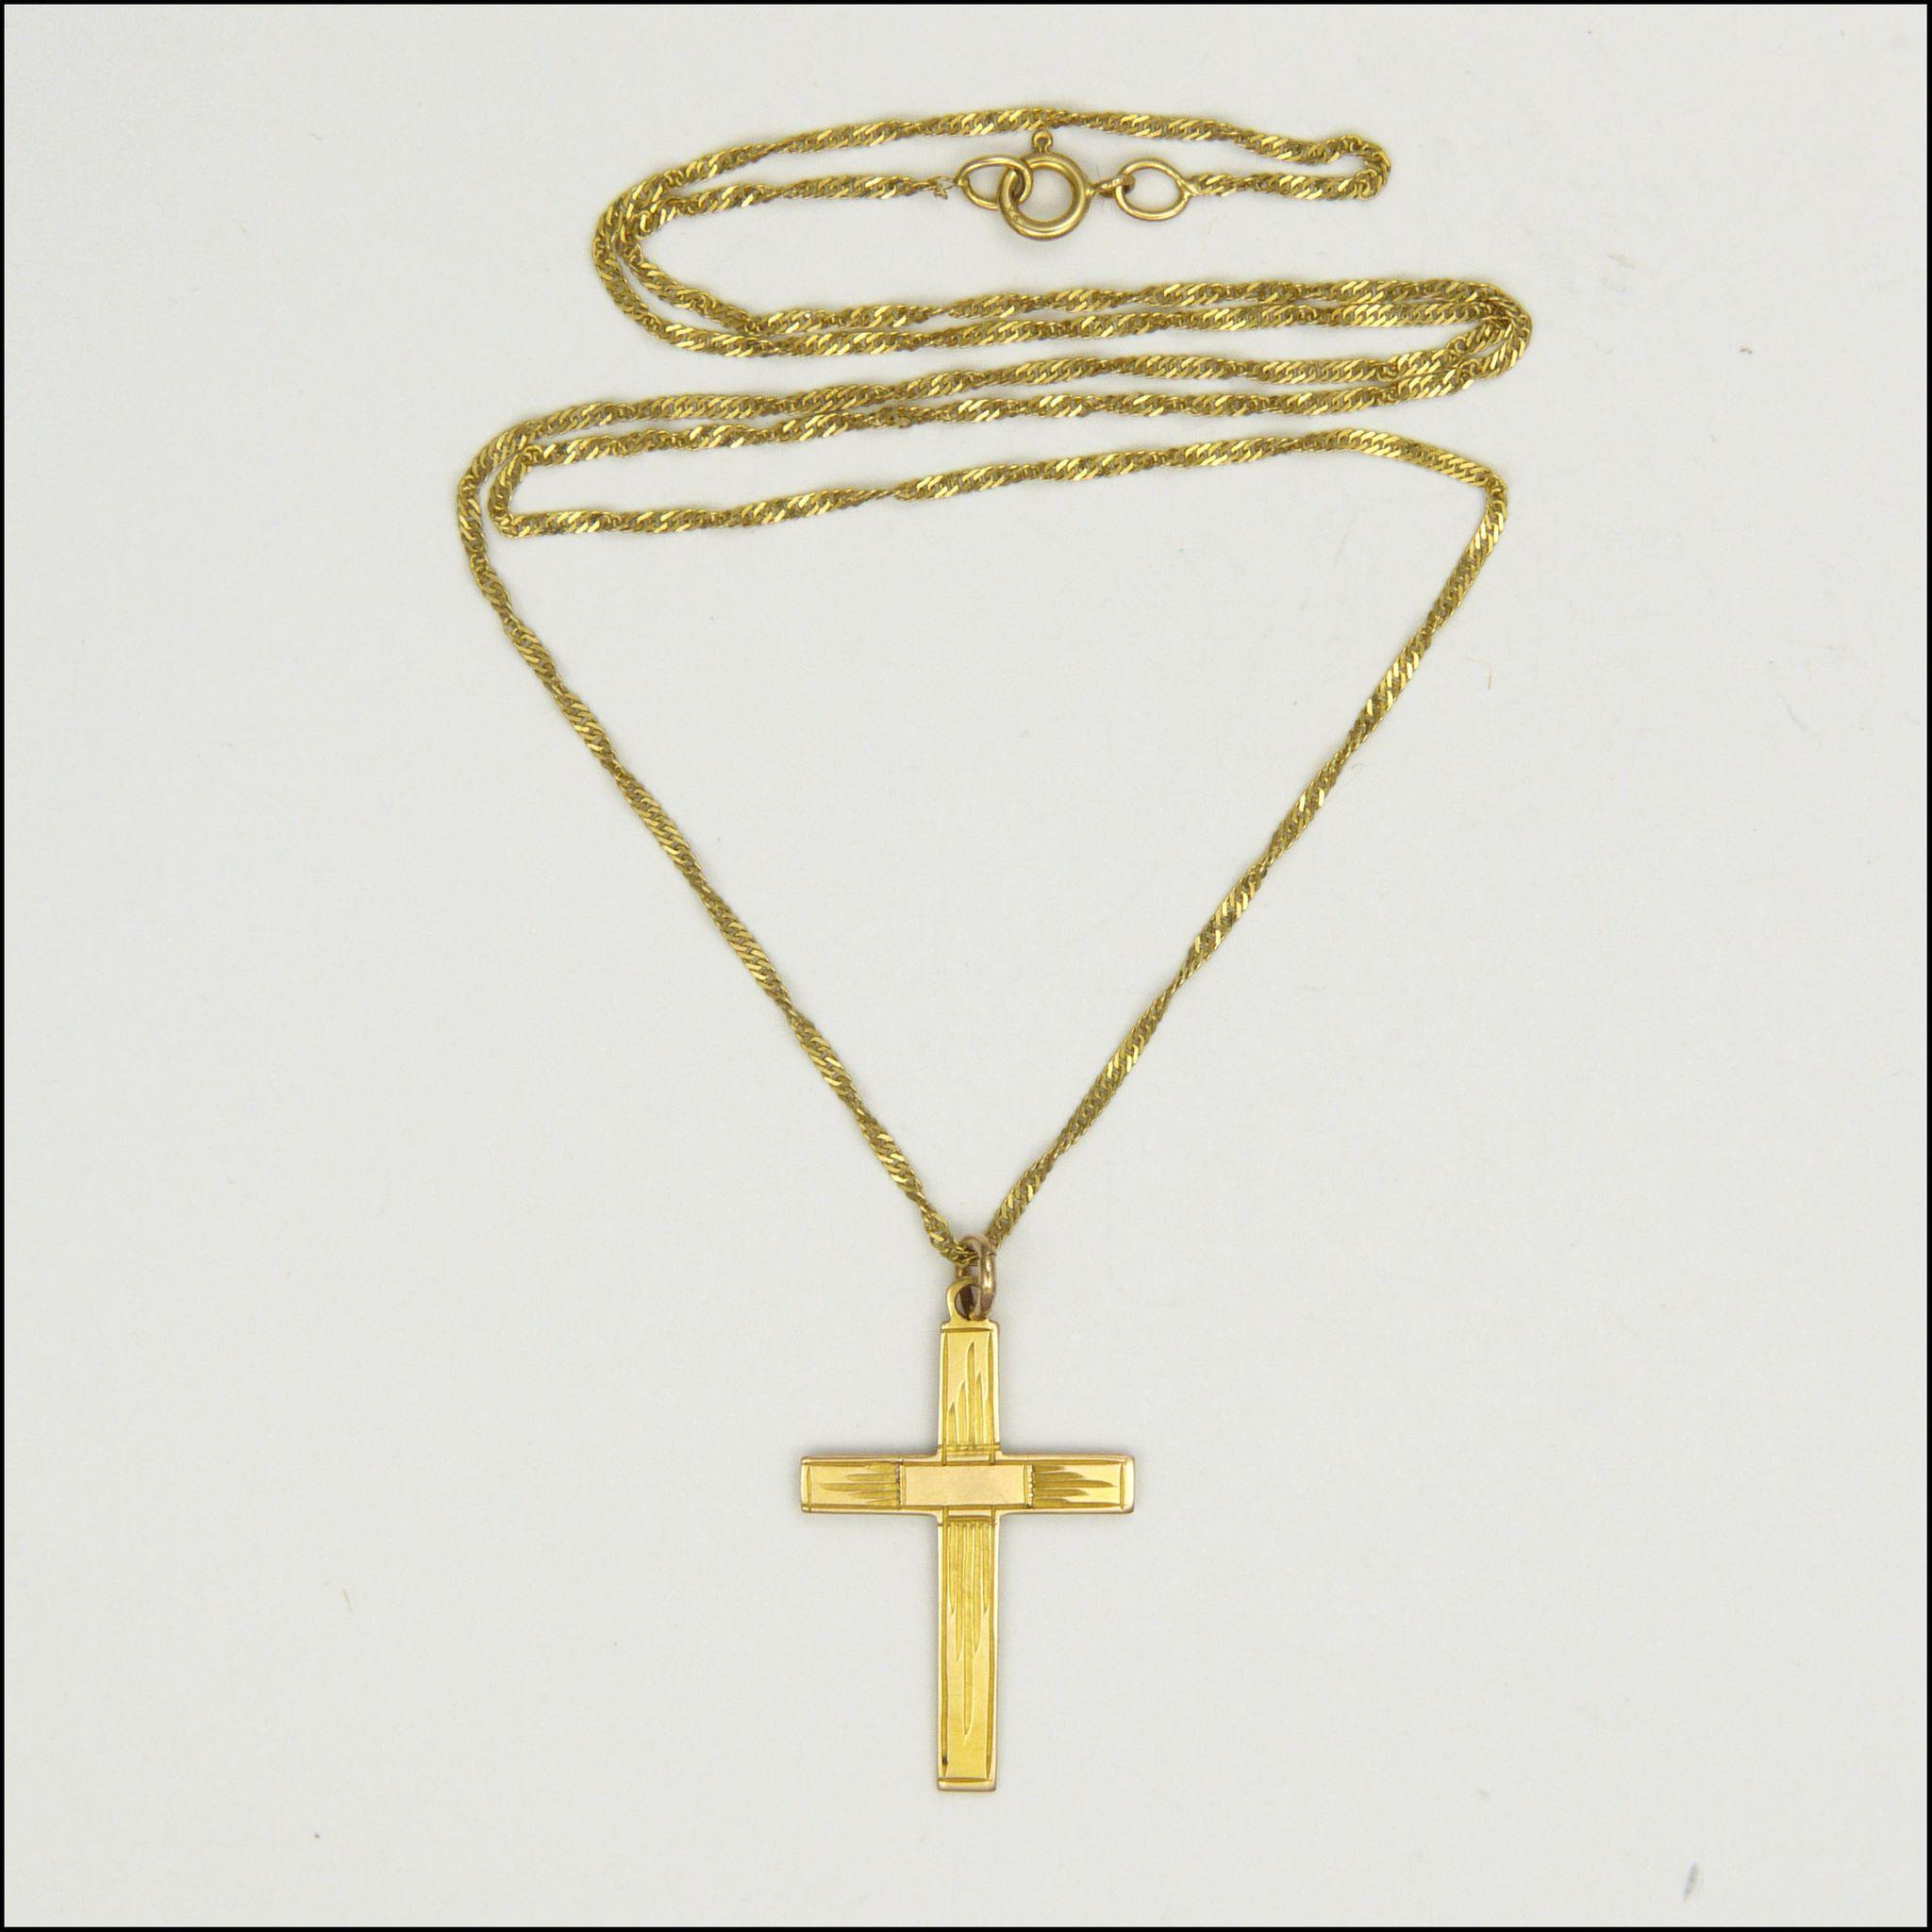 9 Carat Gold Cross and Chain Necklace from ...